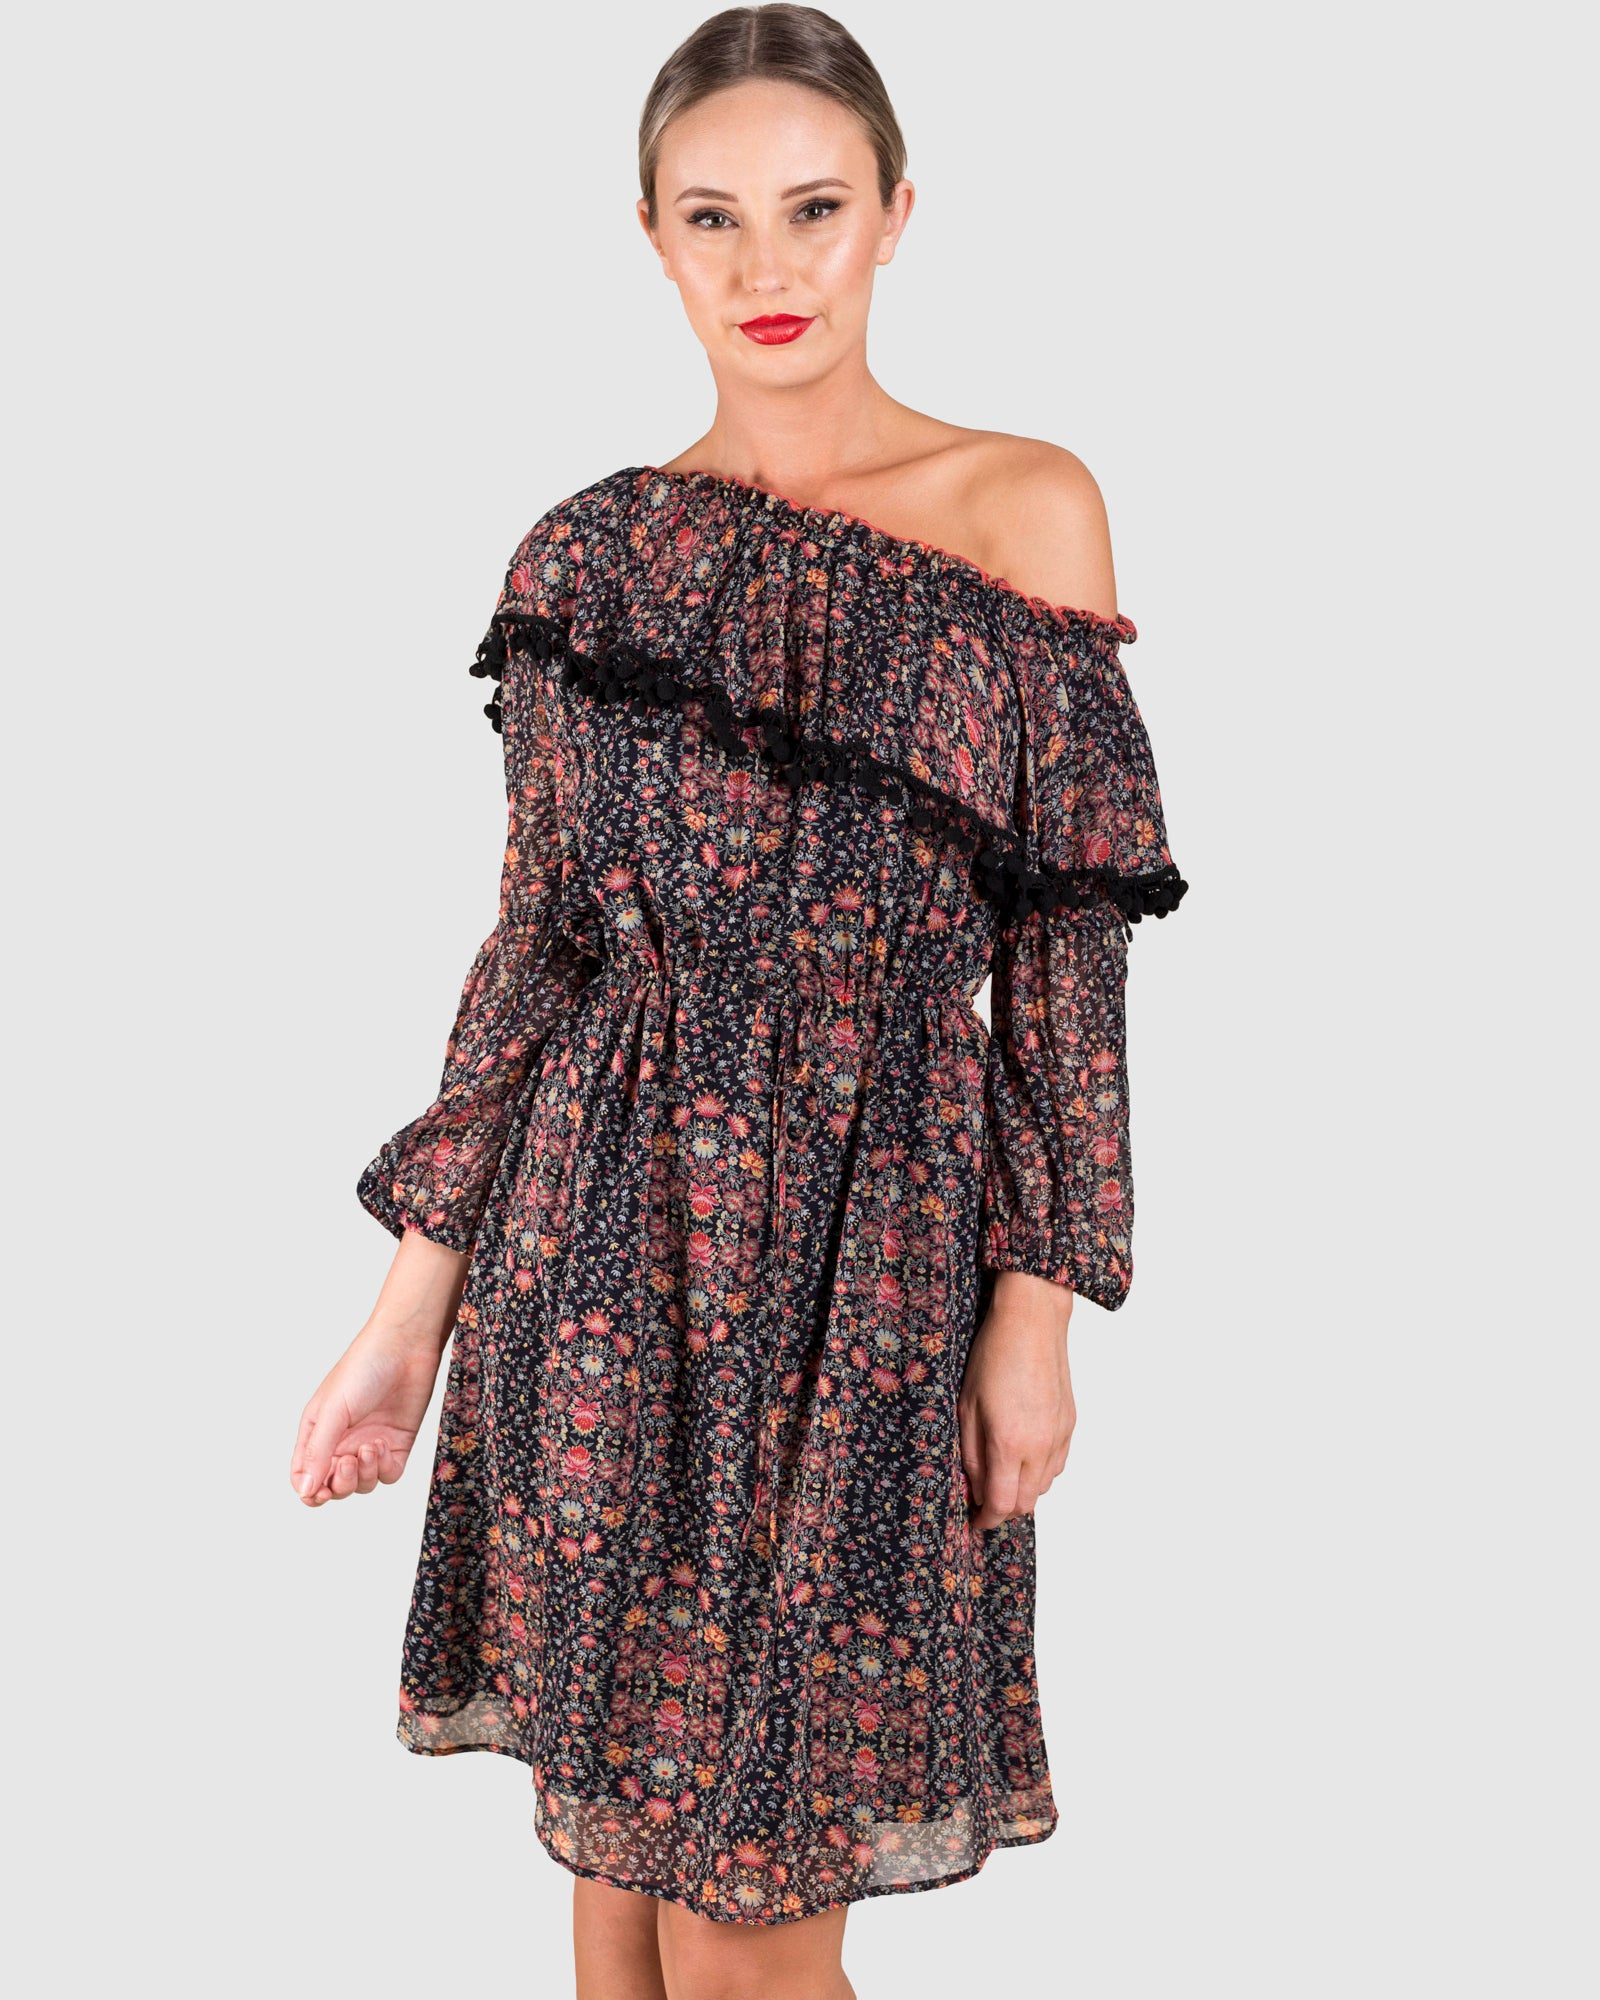 THE PRINTED OFF SHOULDER POM POM DRESS